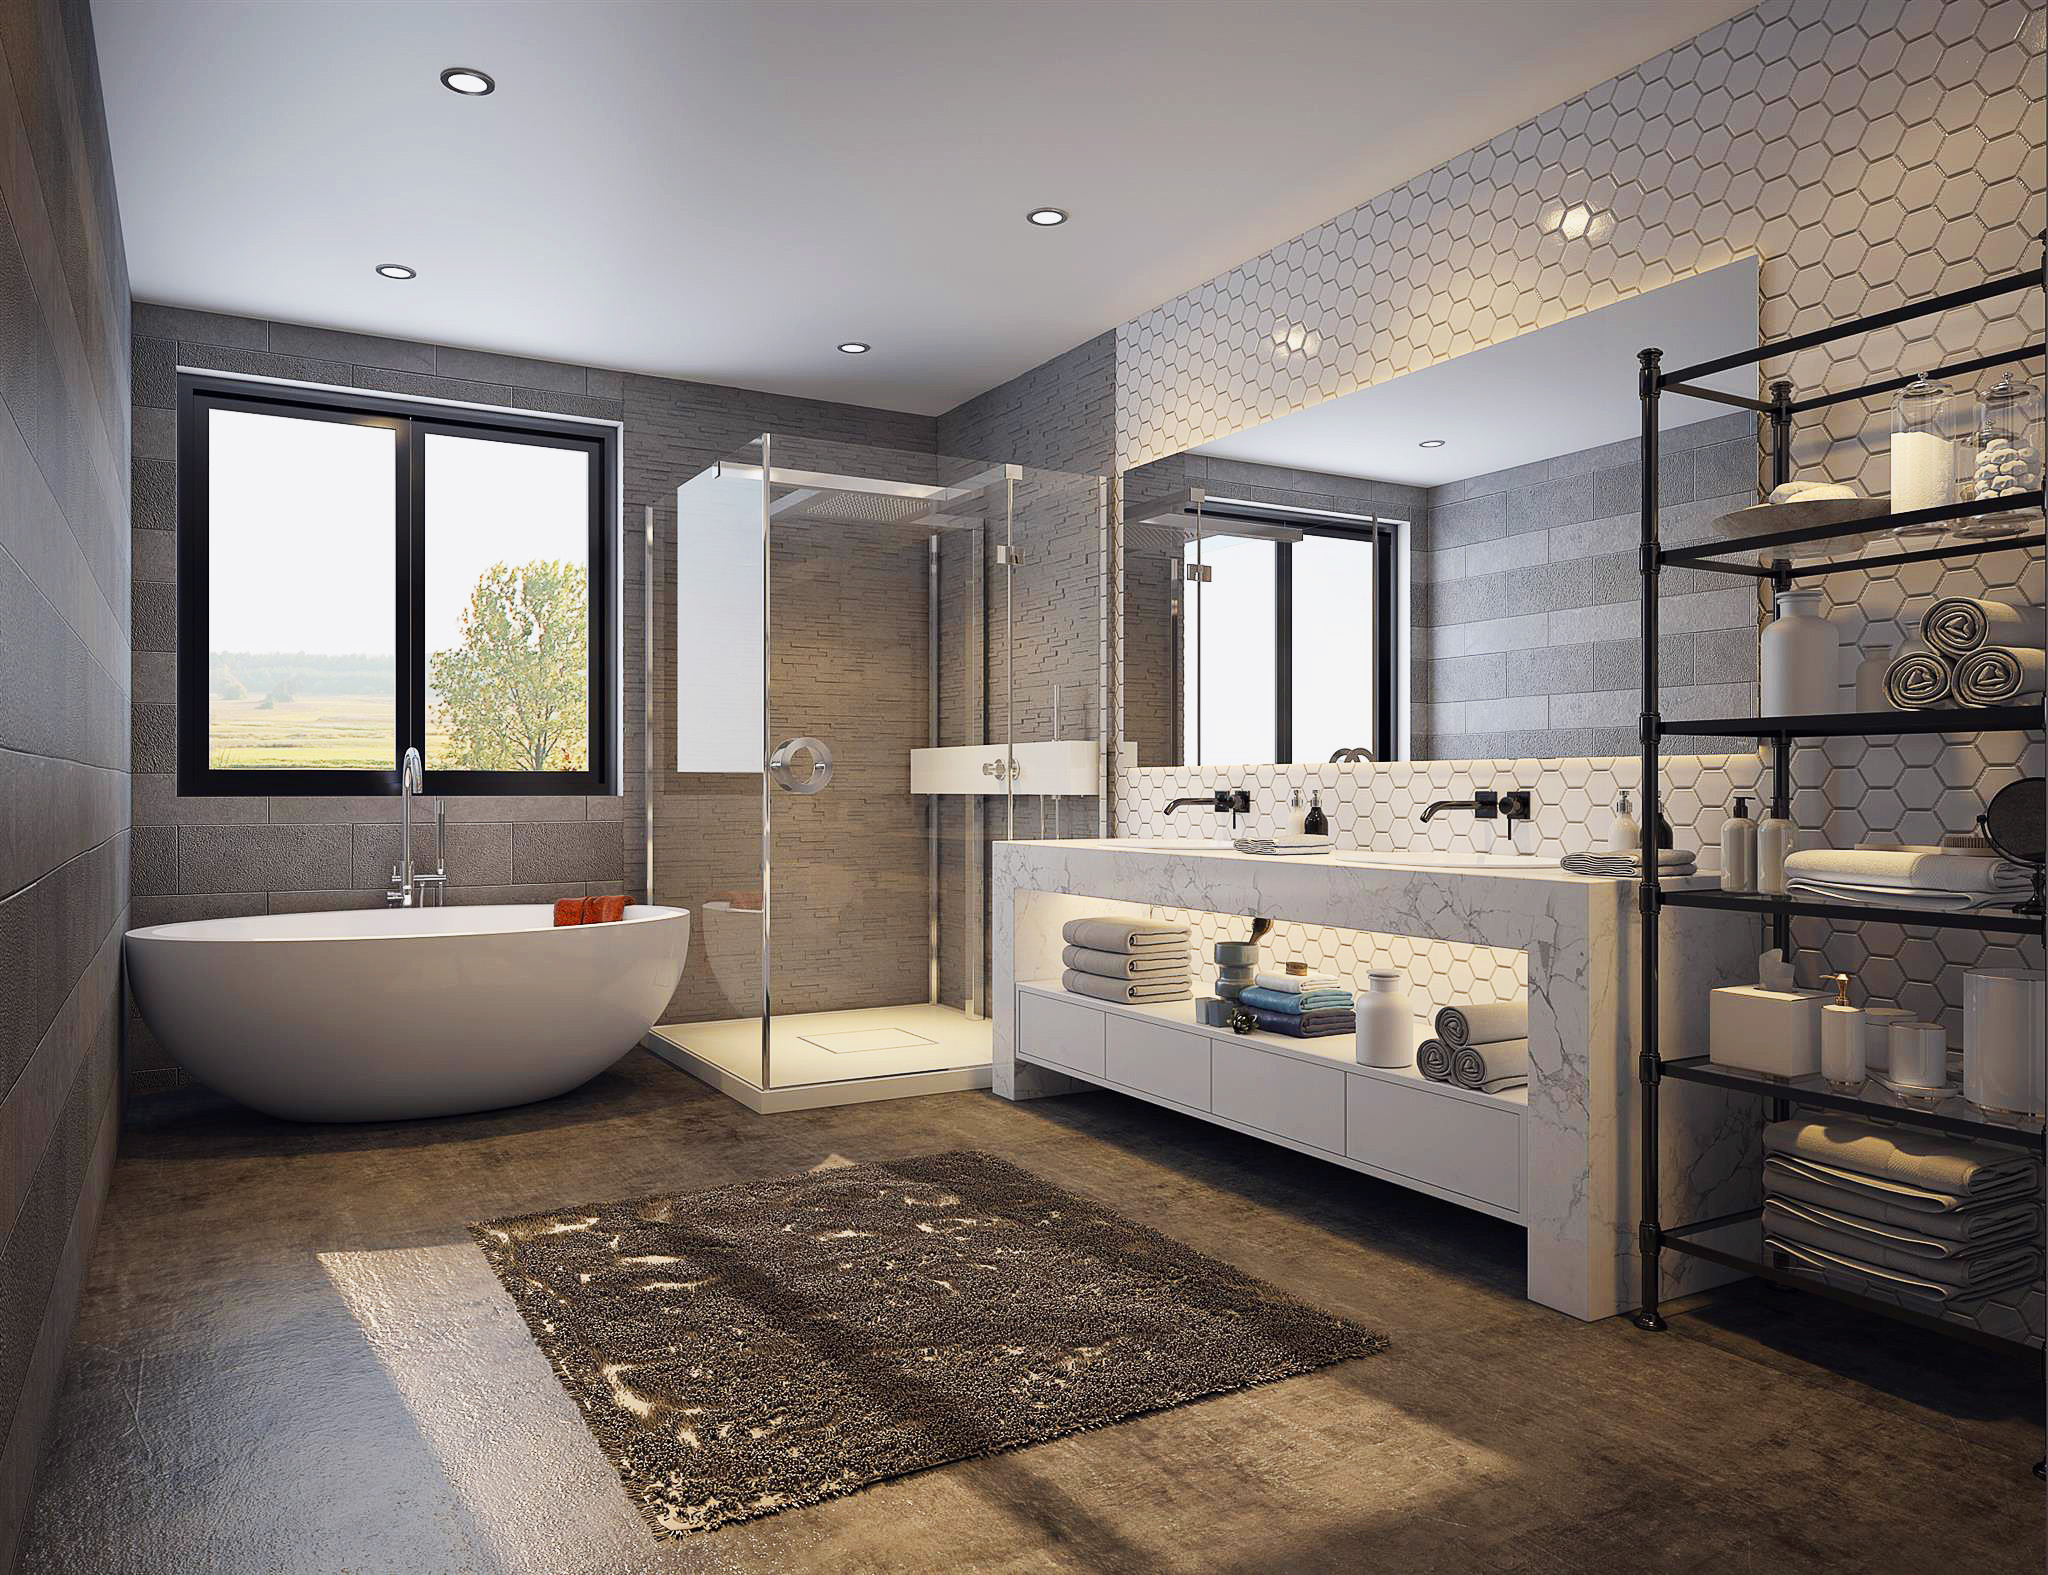 536-Cabin-Visualization-800sqft-Bathroom